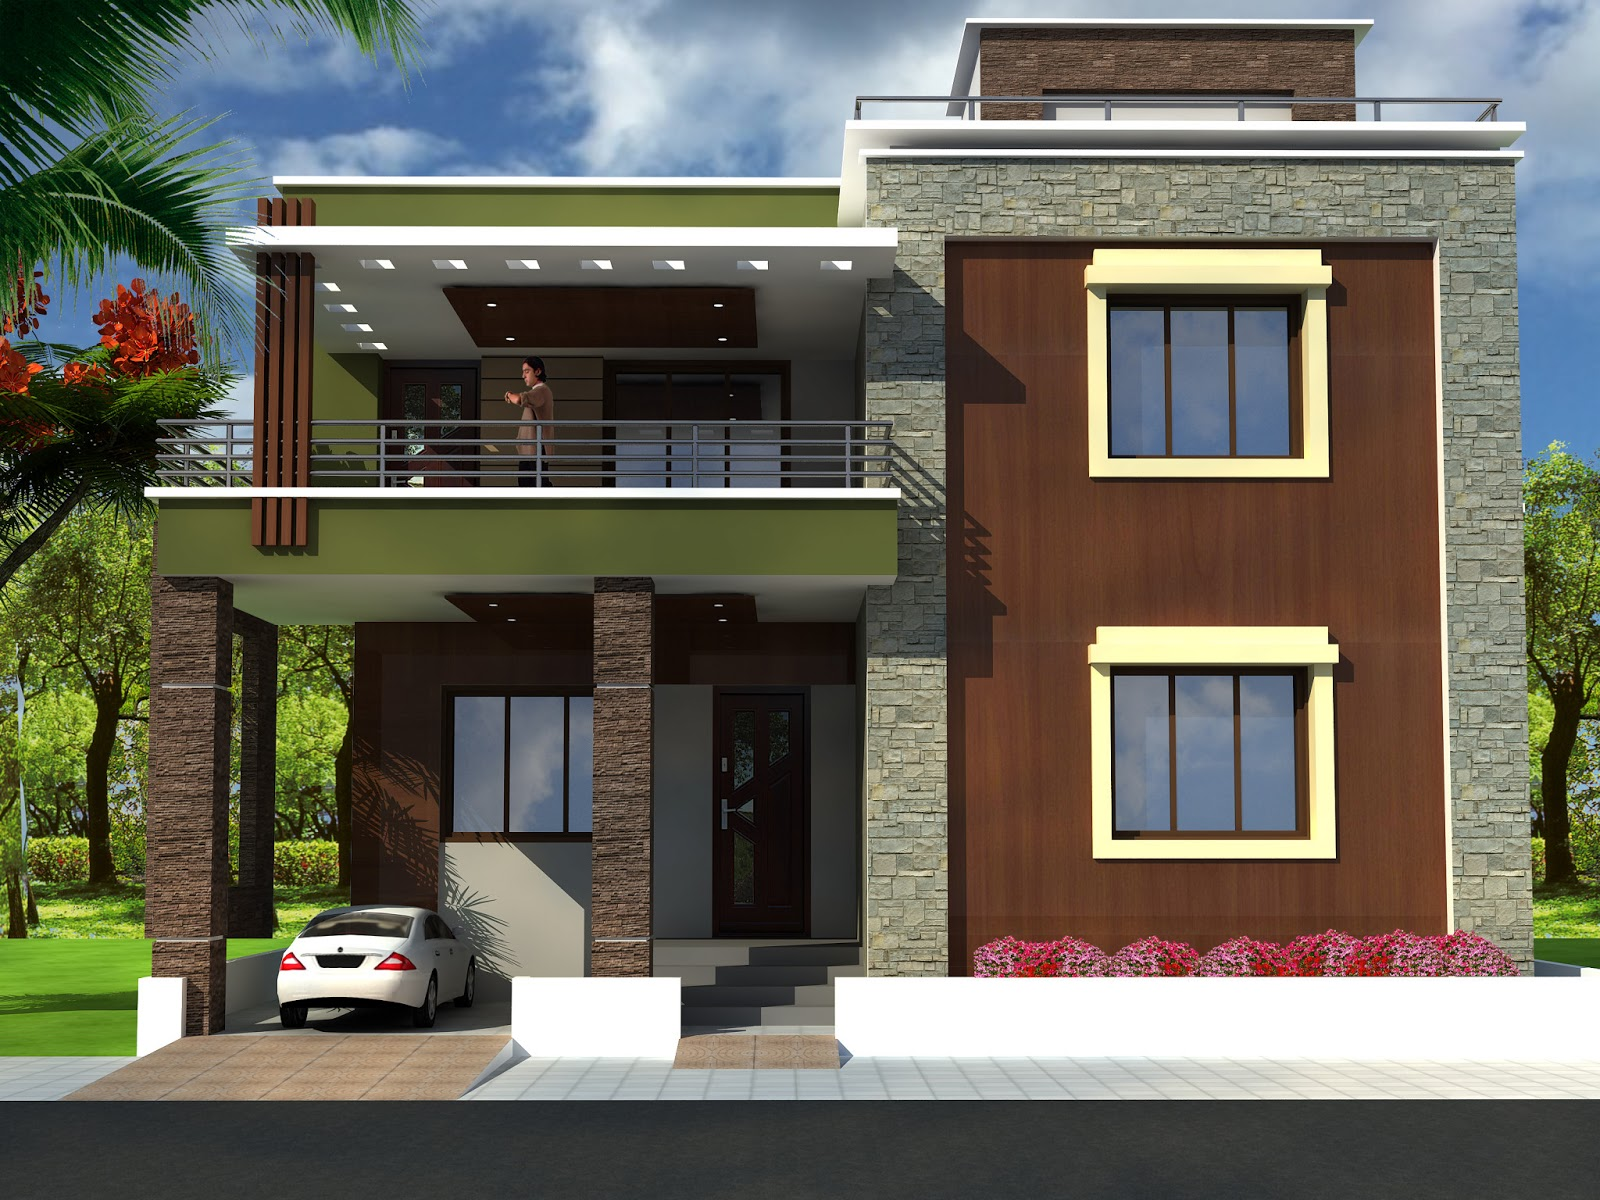 ordinary front design of houses good ideas